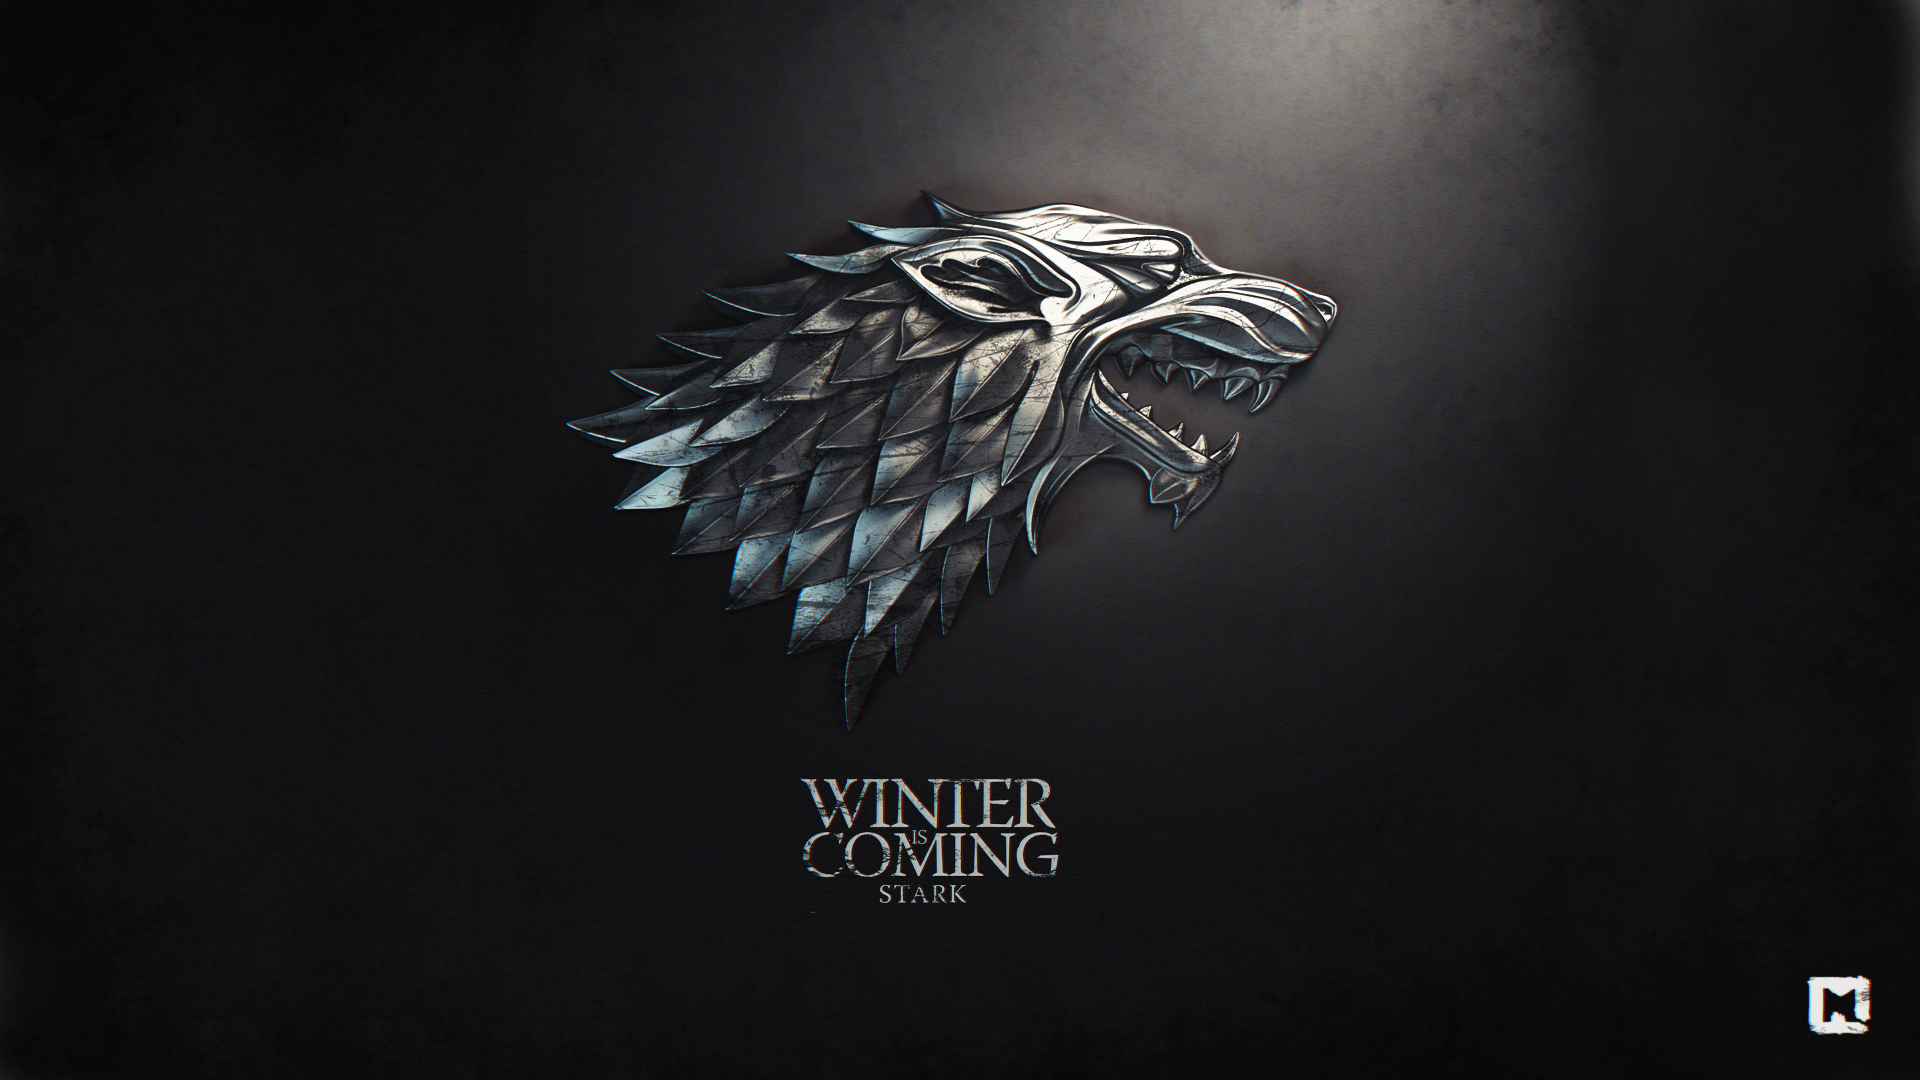 Game of Thrones Season 3 Exclusive HD Wallpapers 1990 1920x1080